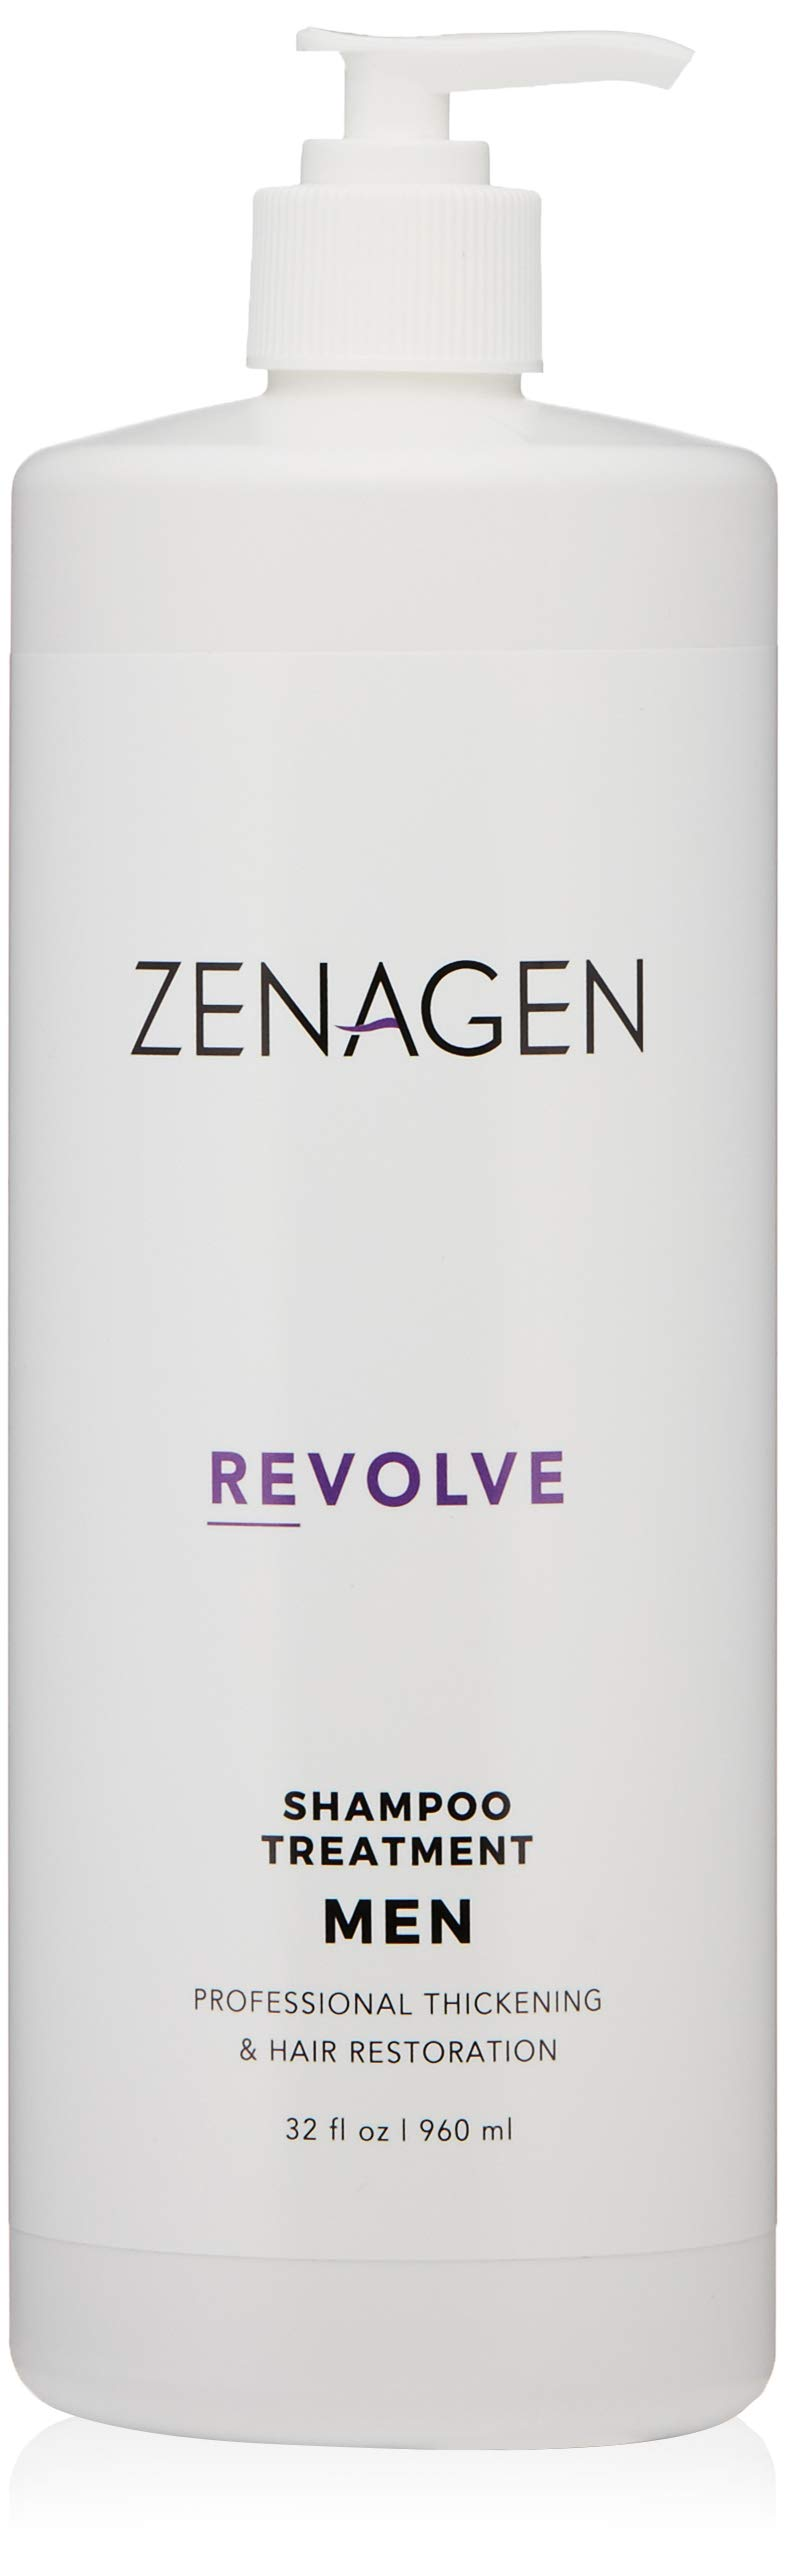 Zenagen Revolve Thickening and Hair Loss Shampoo Treatment for Men, 32 oz. by Zenagen